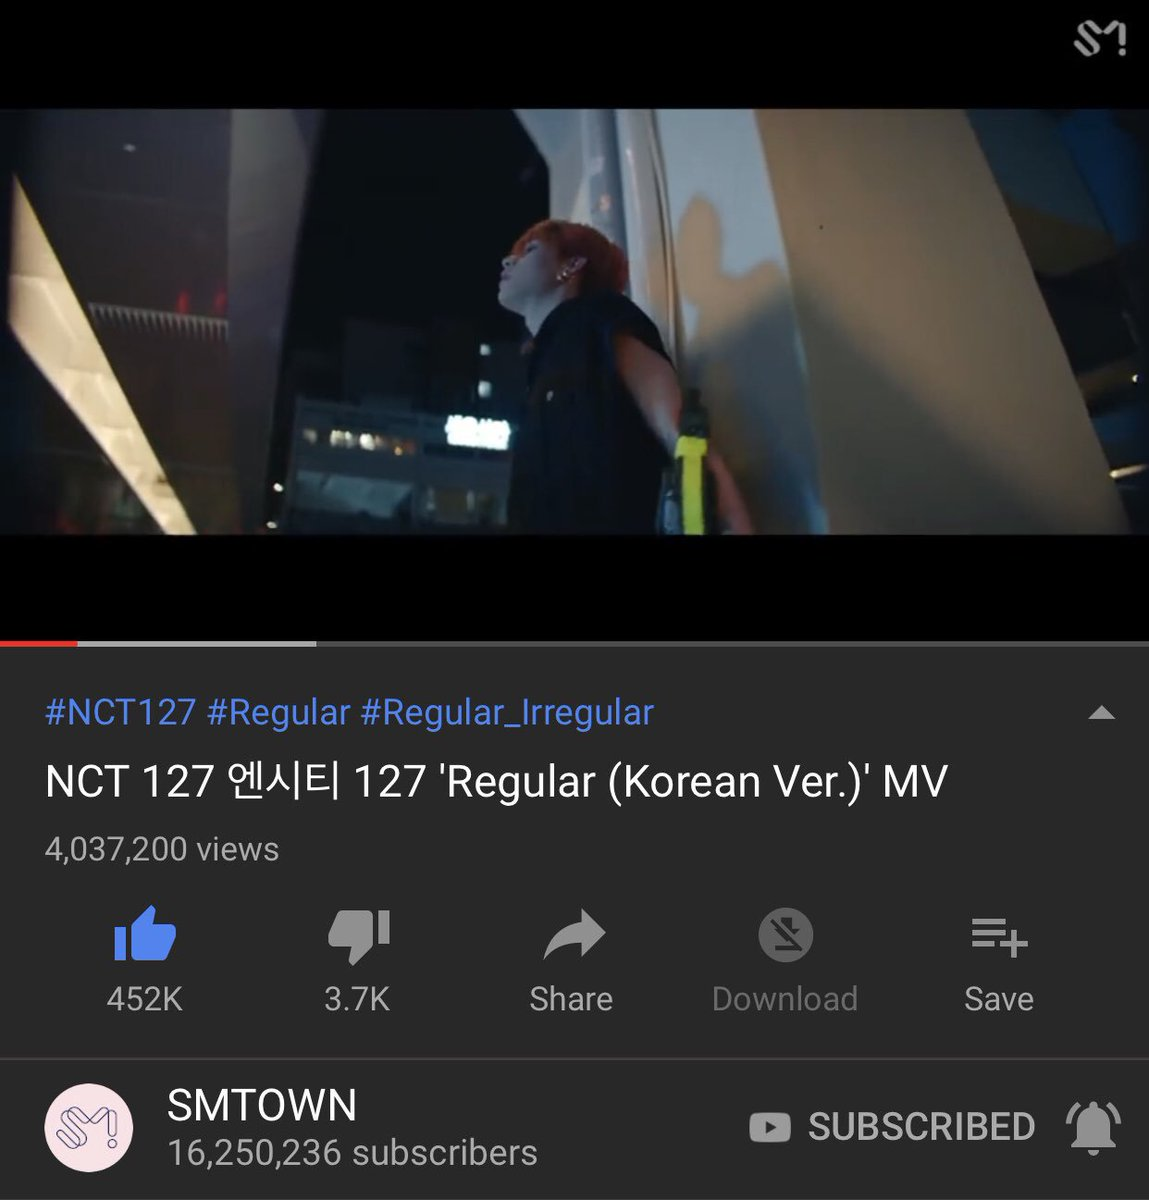 #NCT127_Regular_Kor MV reached 4M views and 452K likes after 6 days since it was released!  Don't forget to stream Czennies!    http:// youtu.be/Gif0E6jYakM  &nbsp;    @NCTsmtown @NCTsmtown_127 #NCT127_Regular_Irregular⁠<br>http://pic.twitter.com/mUDUwVXka0